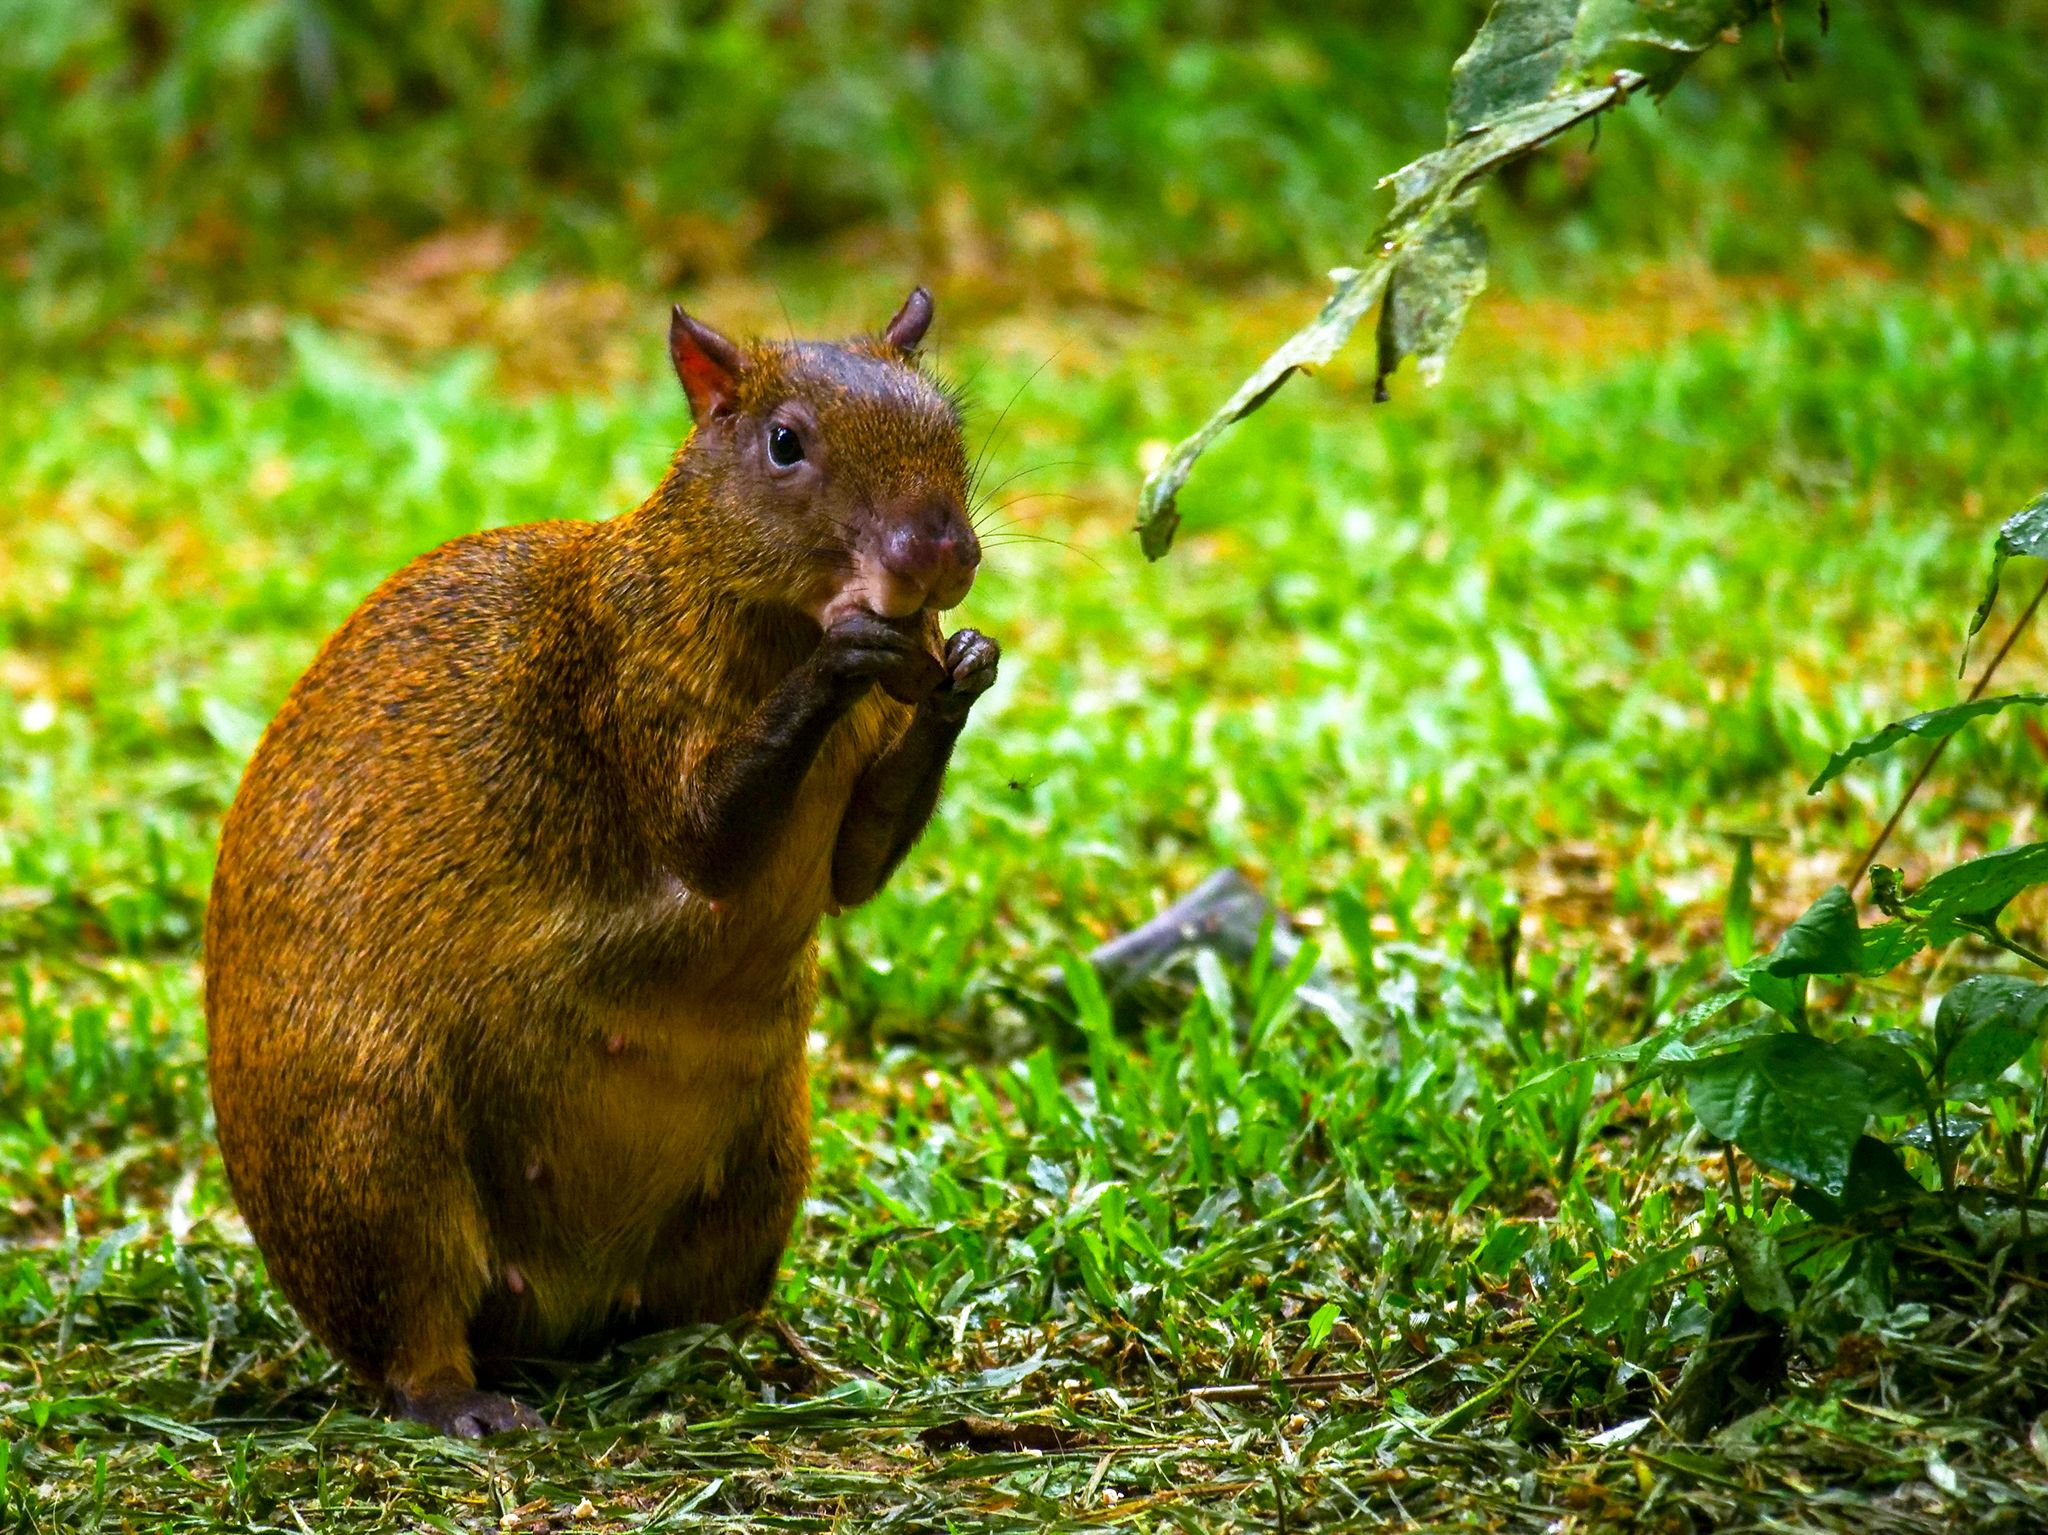 Tambopata, Madre De Dios, Peru:  Agouti feeding on nuts. This image is from Wild Peru: Andes... [Foto del giorno - November 2018]